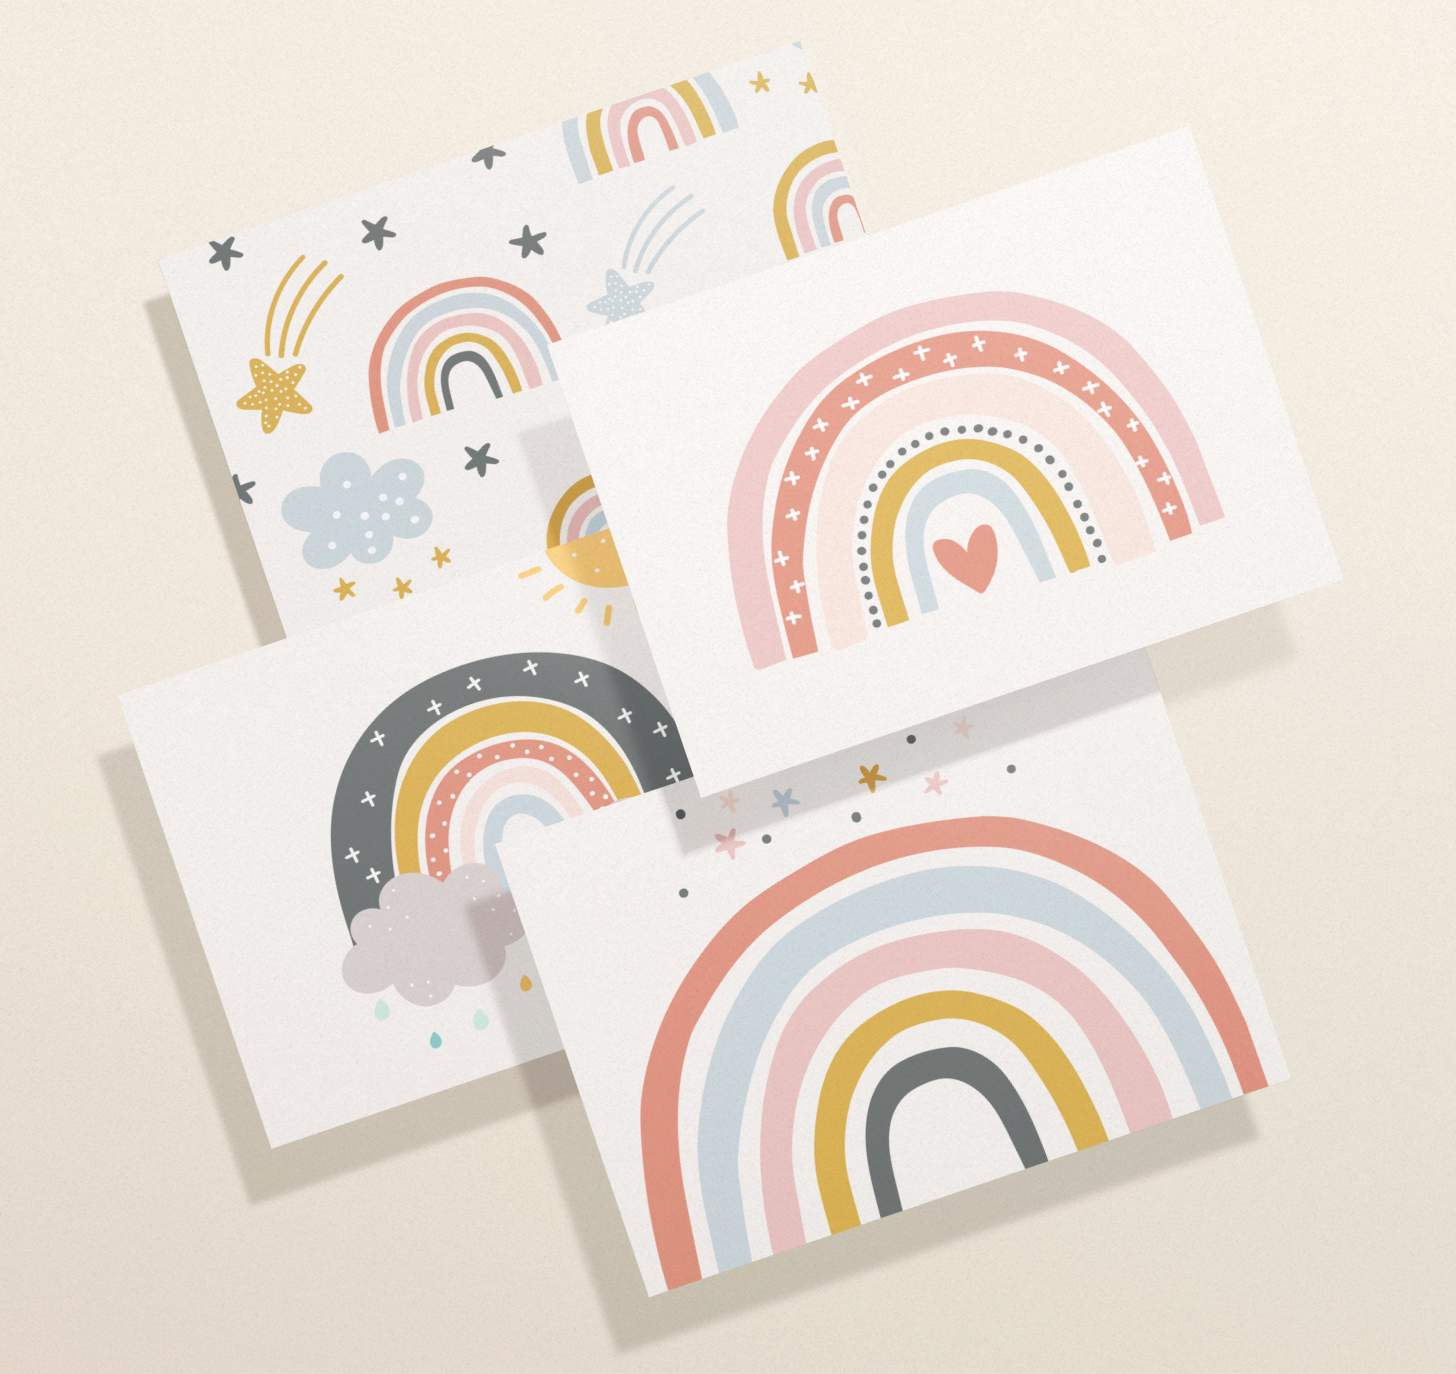 Four overlapping rainbow cards with assorted colorful designs